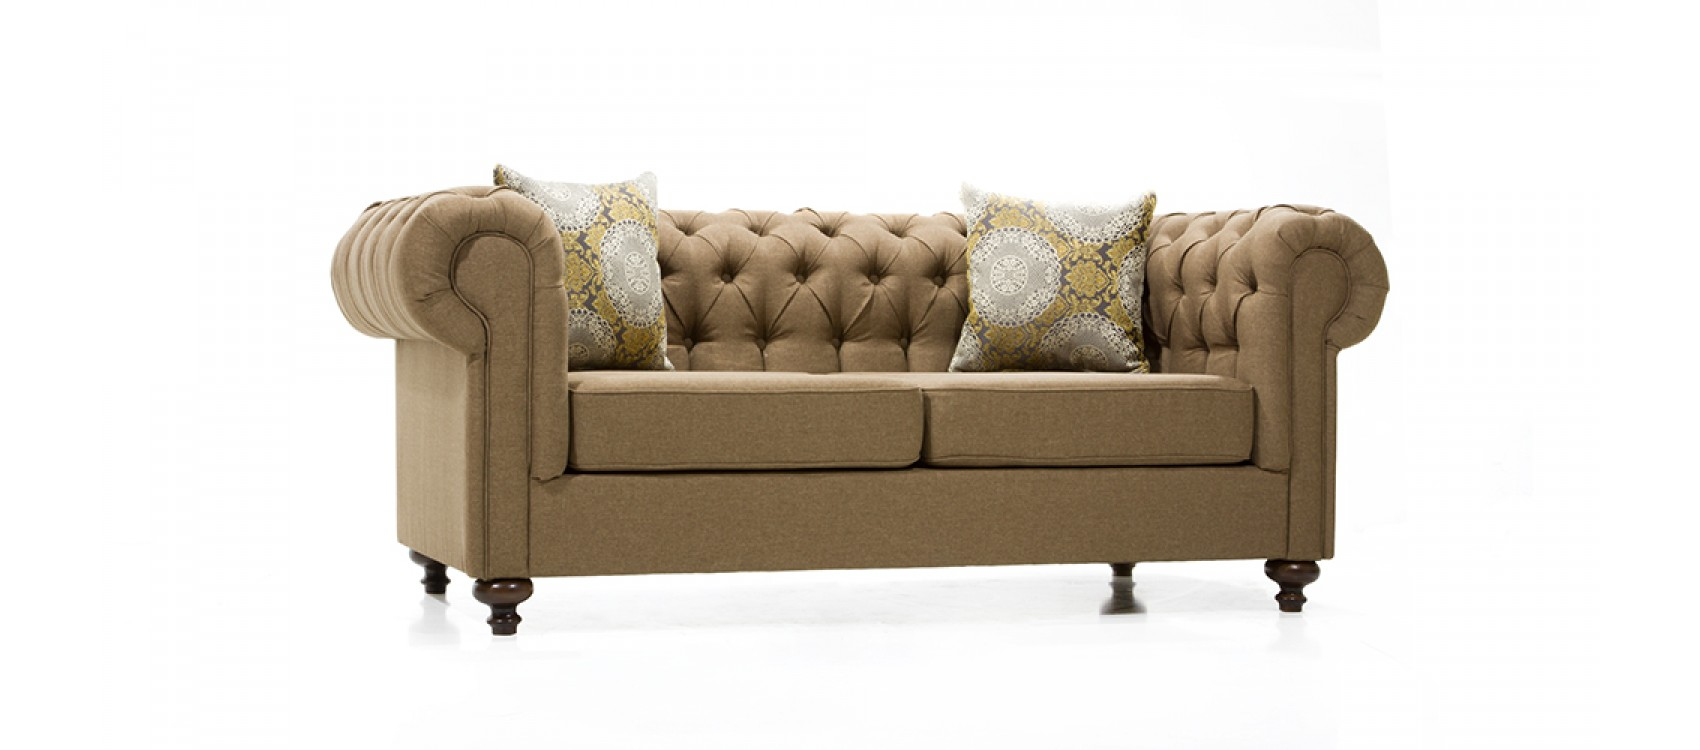 Sofa CHESTER 2 SEATER صور 4